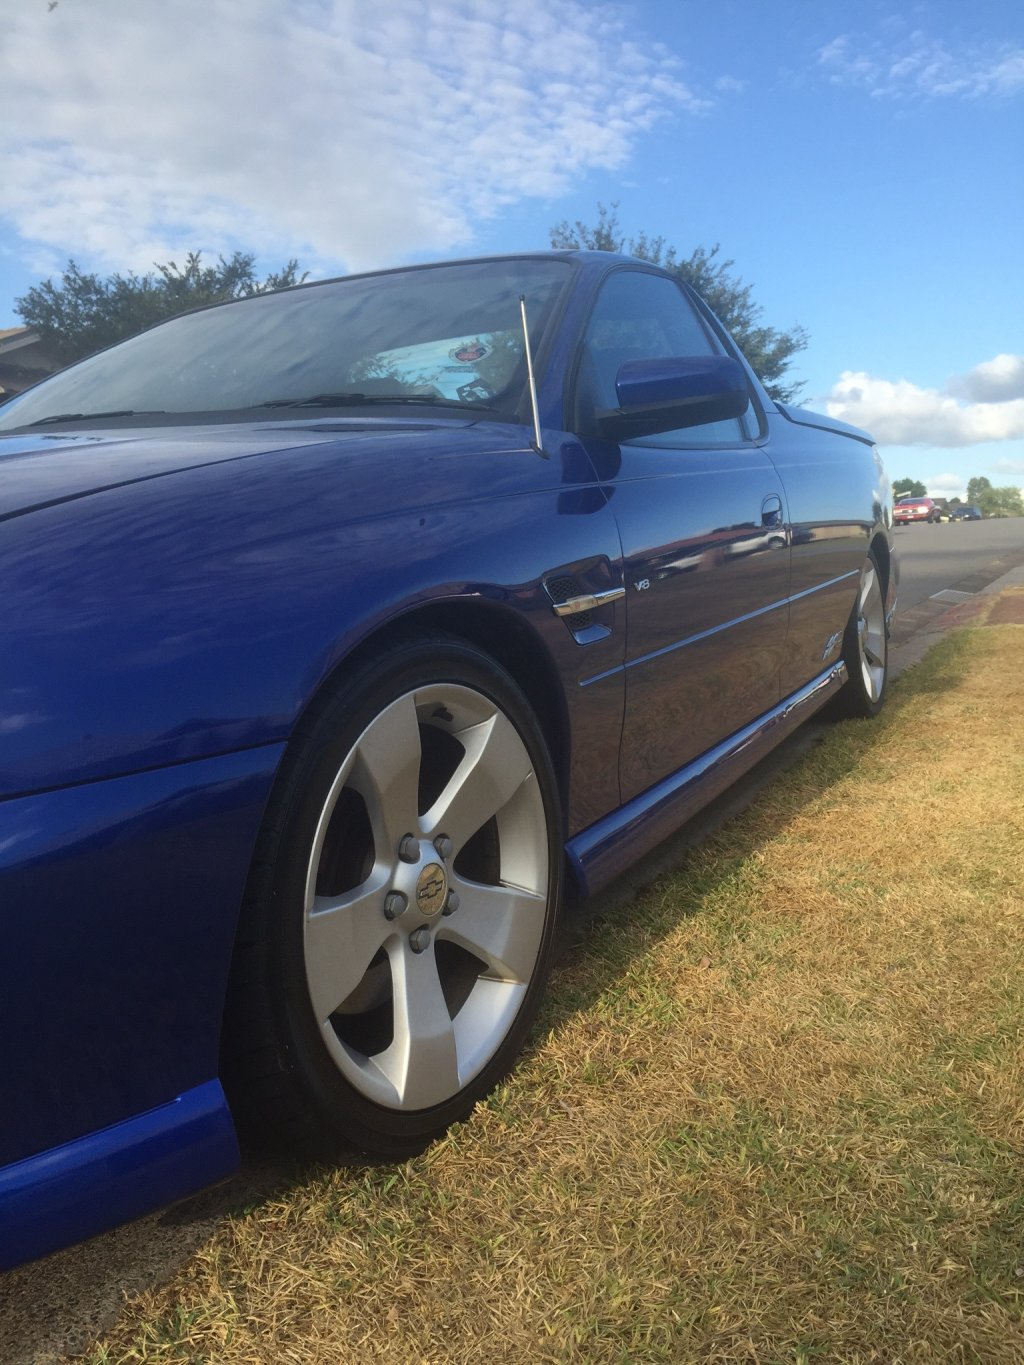 2005 Holden Commodore SSZ VZ